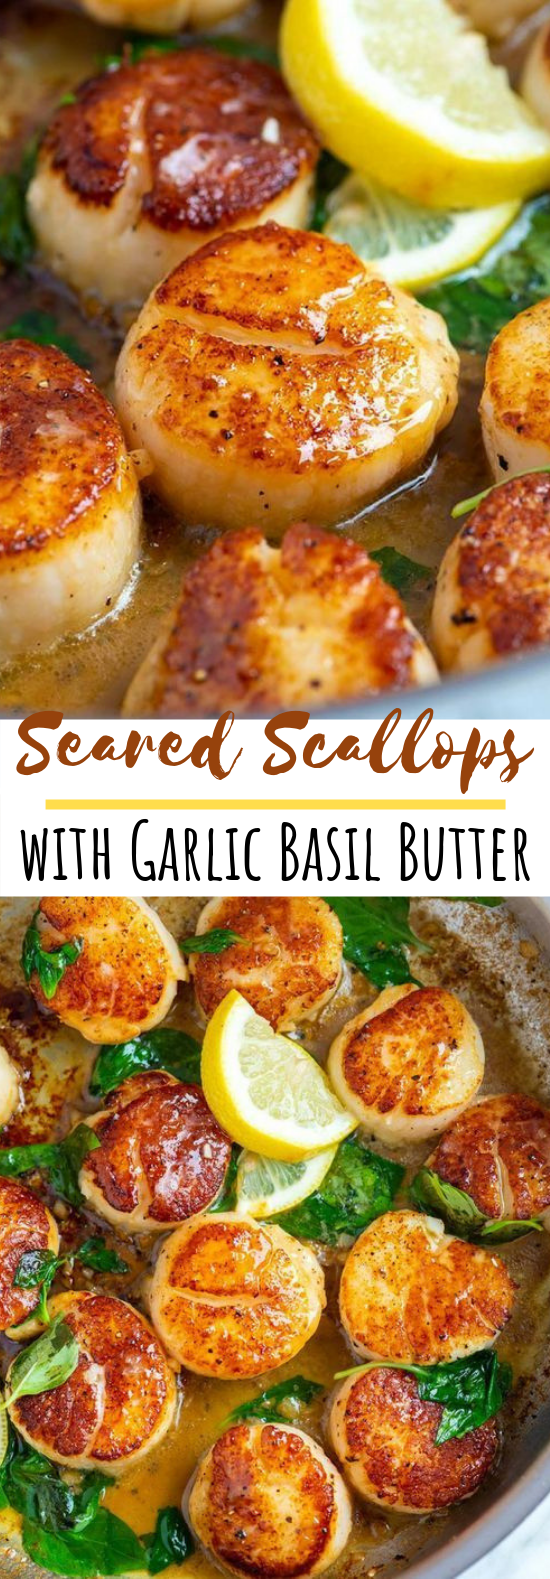 Seared Scallops with Garlic Basil Butter #seafood #dinner